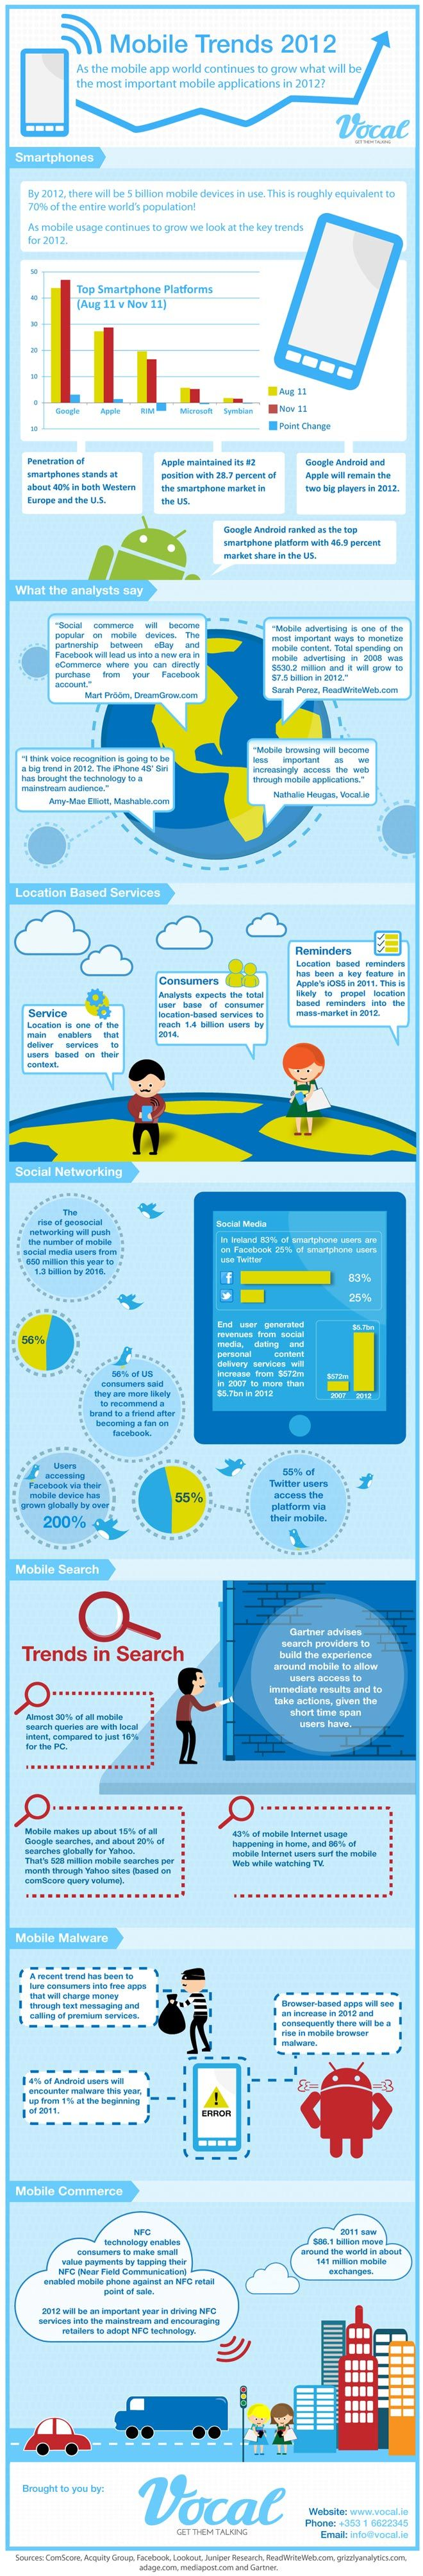 Infographic: #Mobile Trends 2012